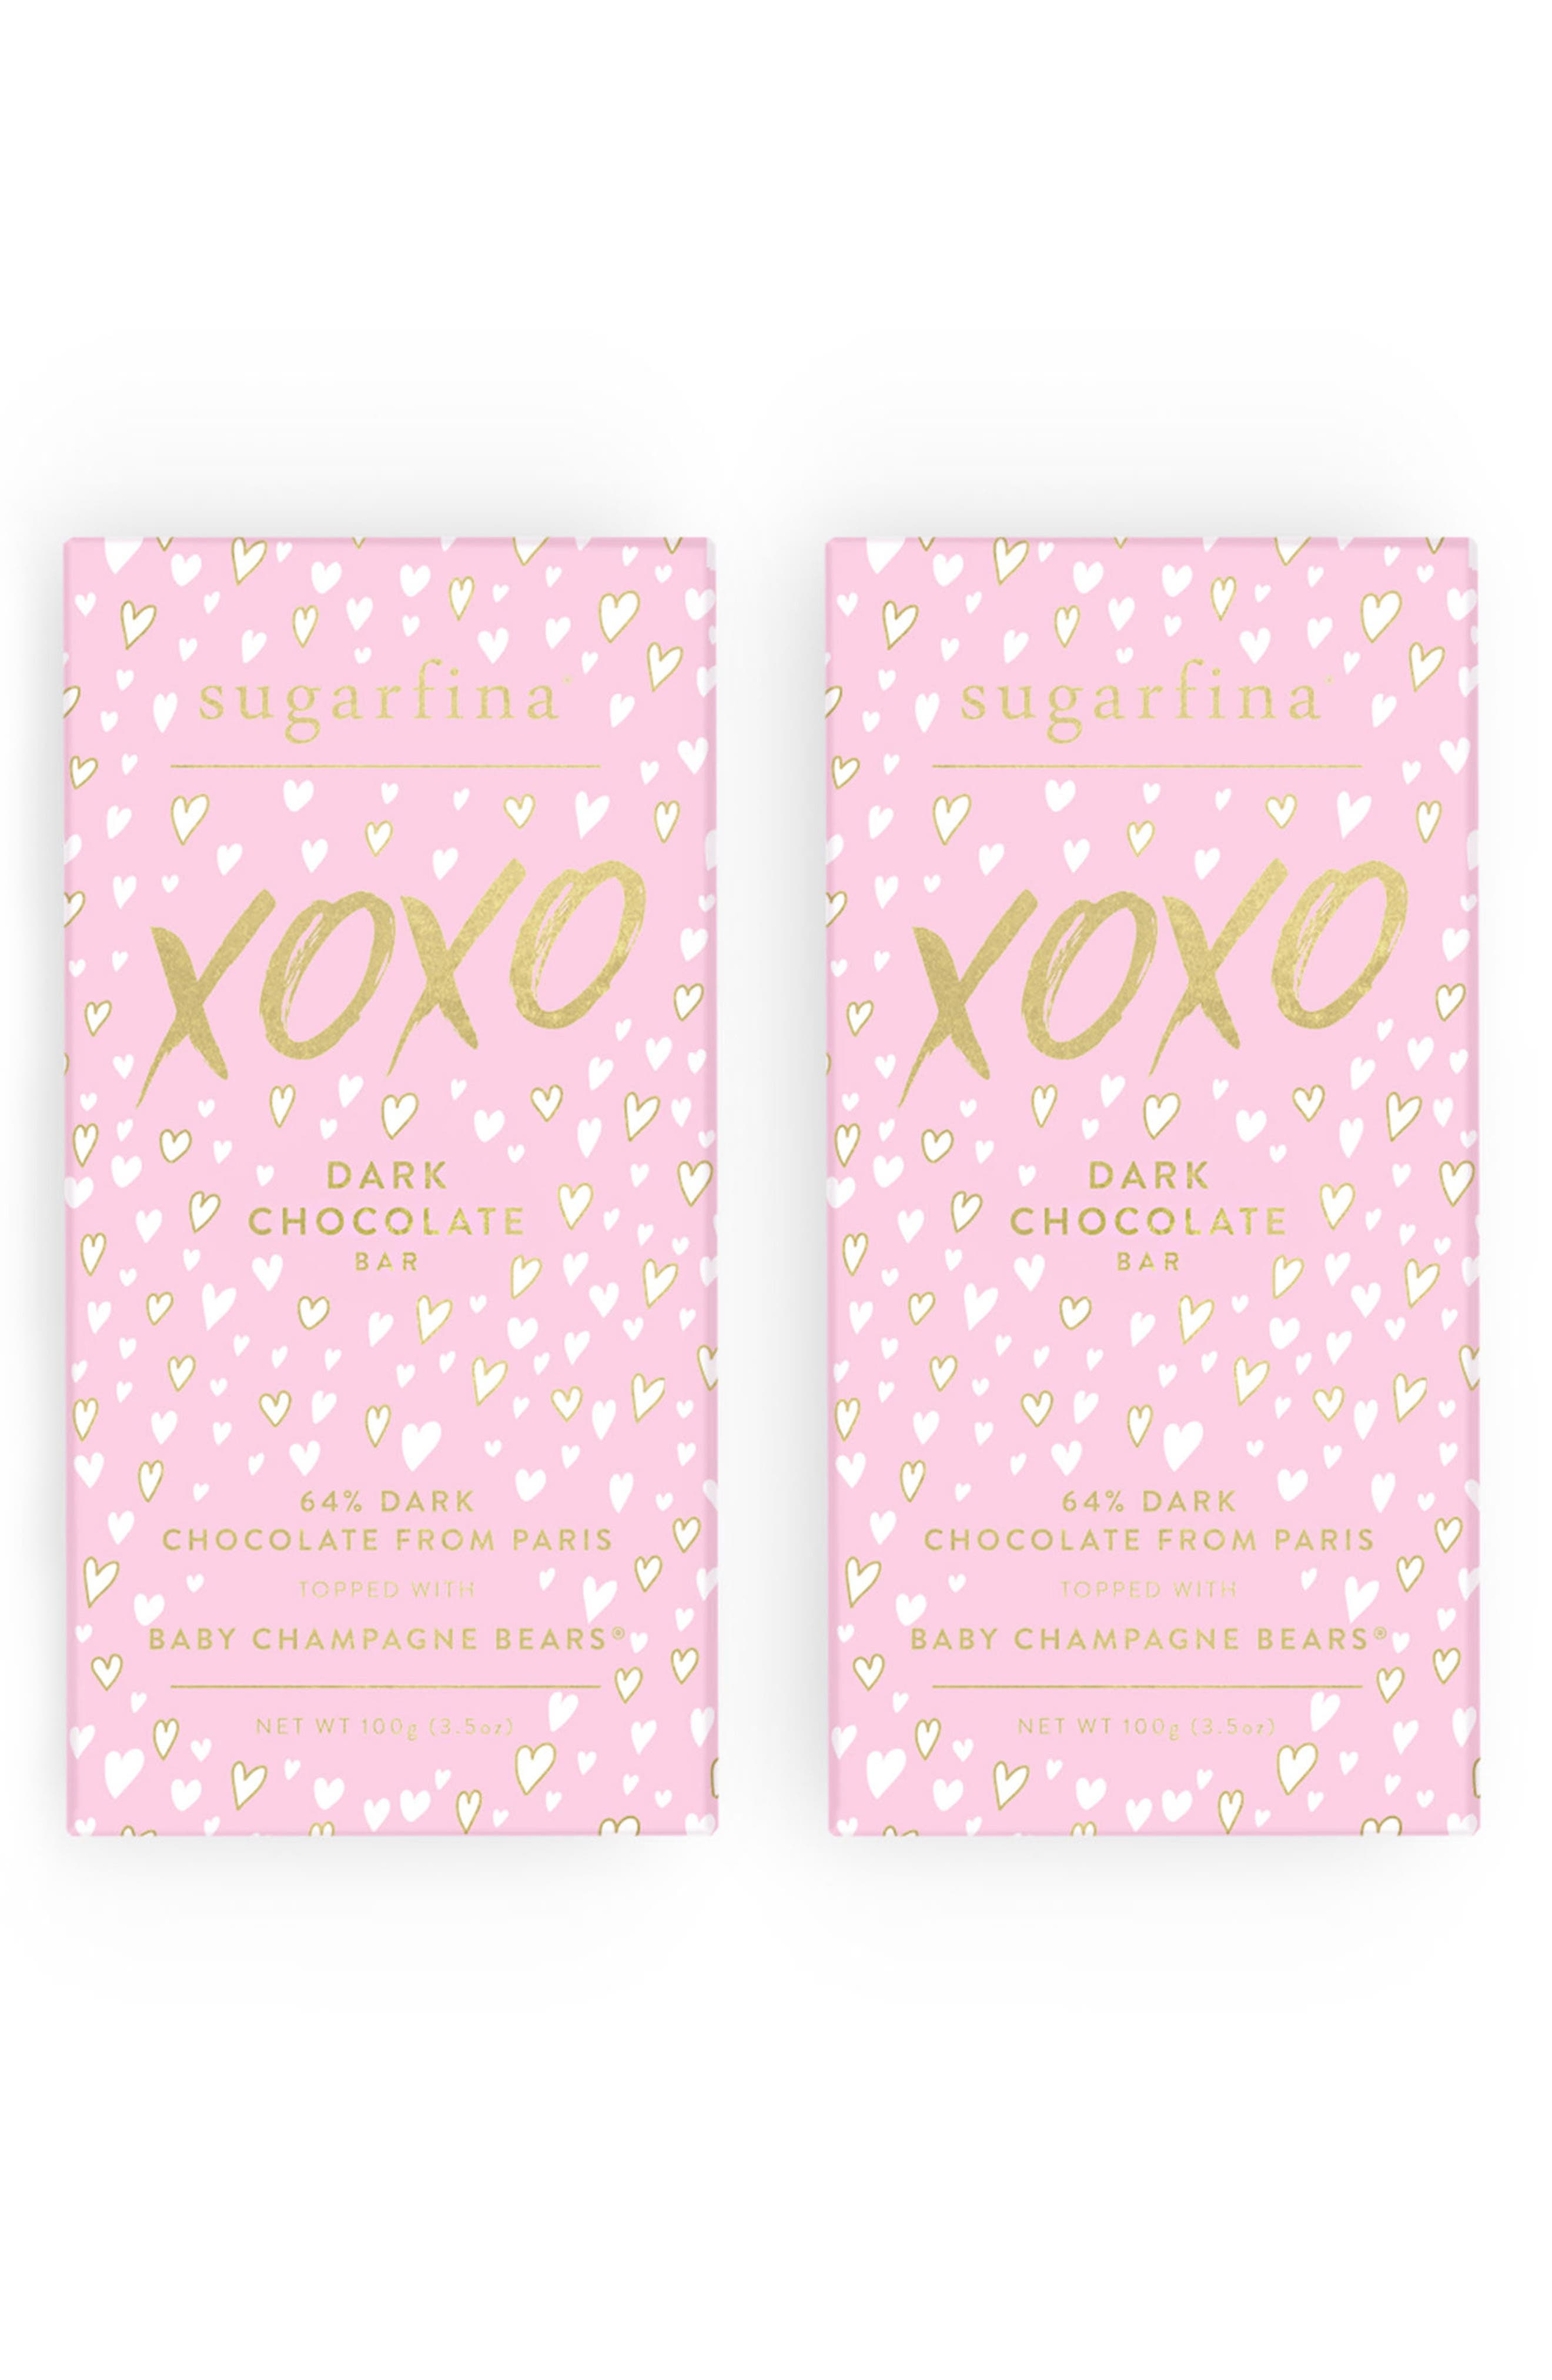 sugarfina XOXO 2-Pack Dark Chocolate Baby Champagne Bears® Bars